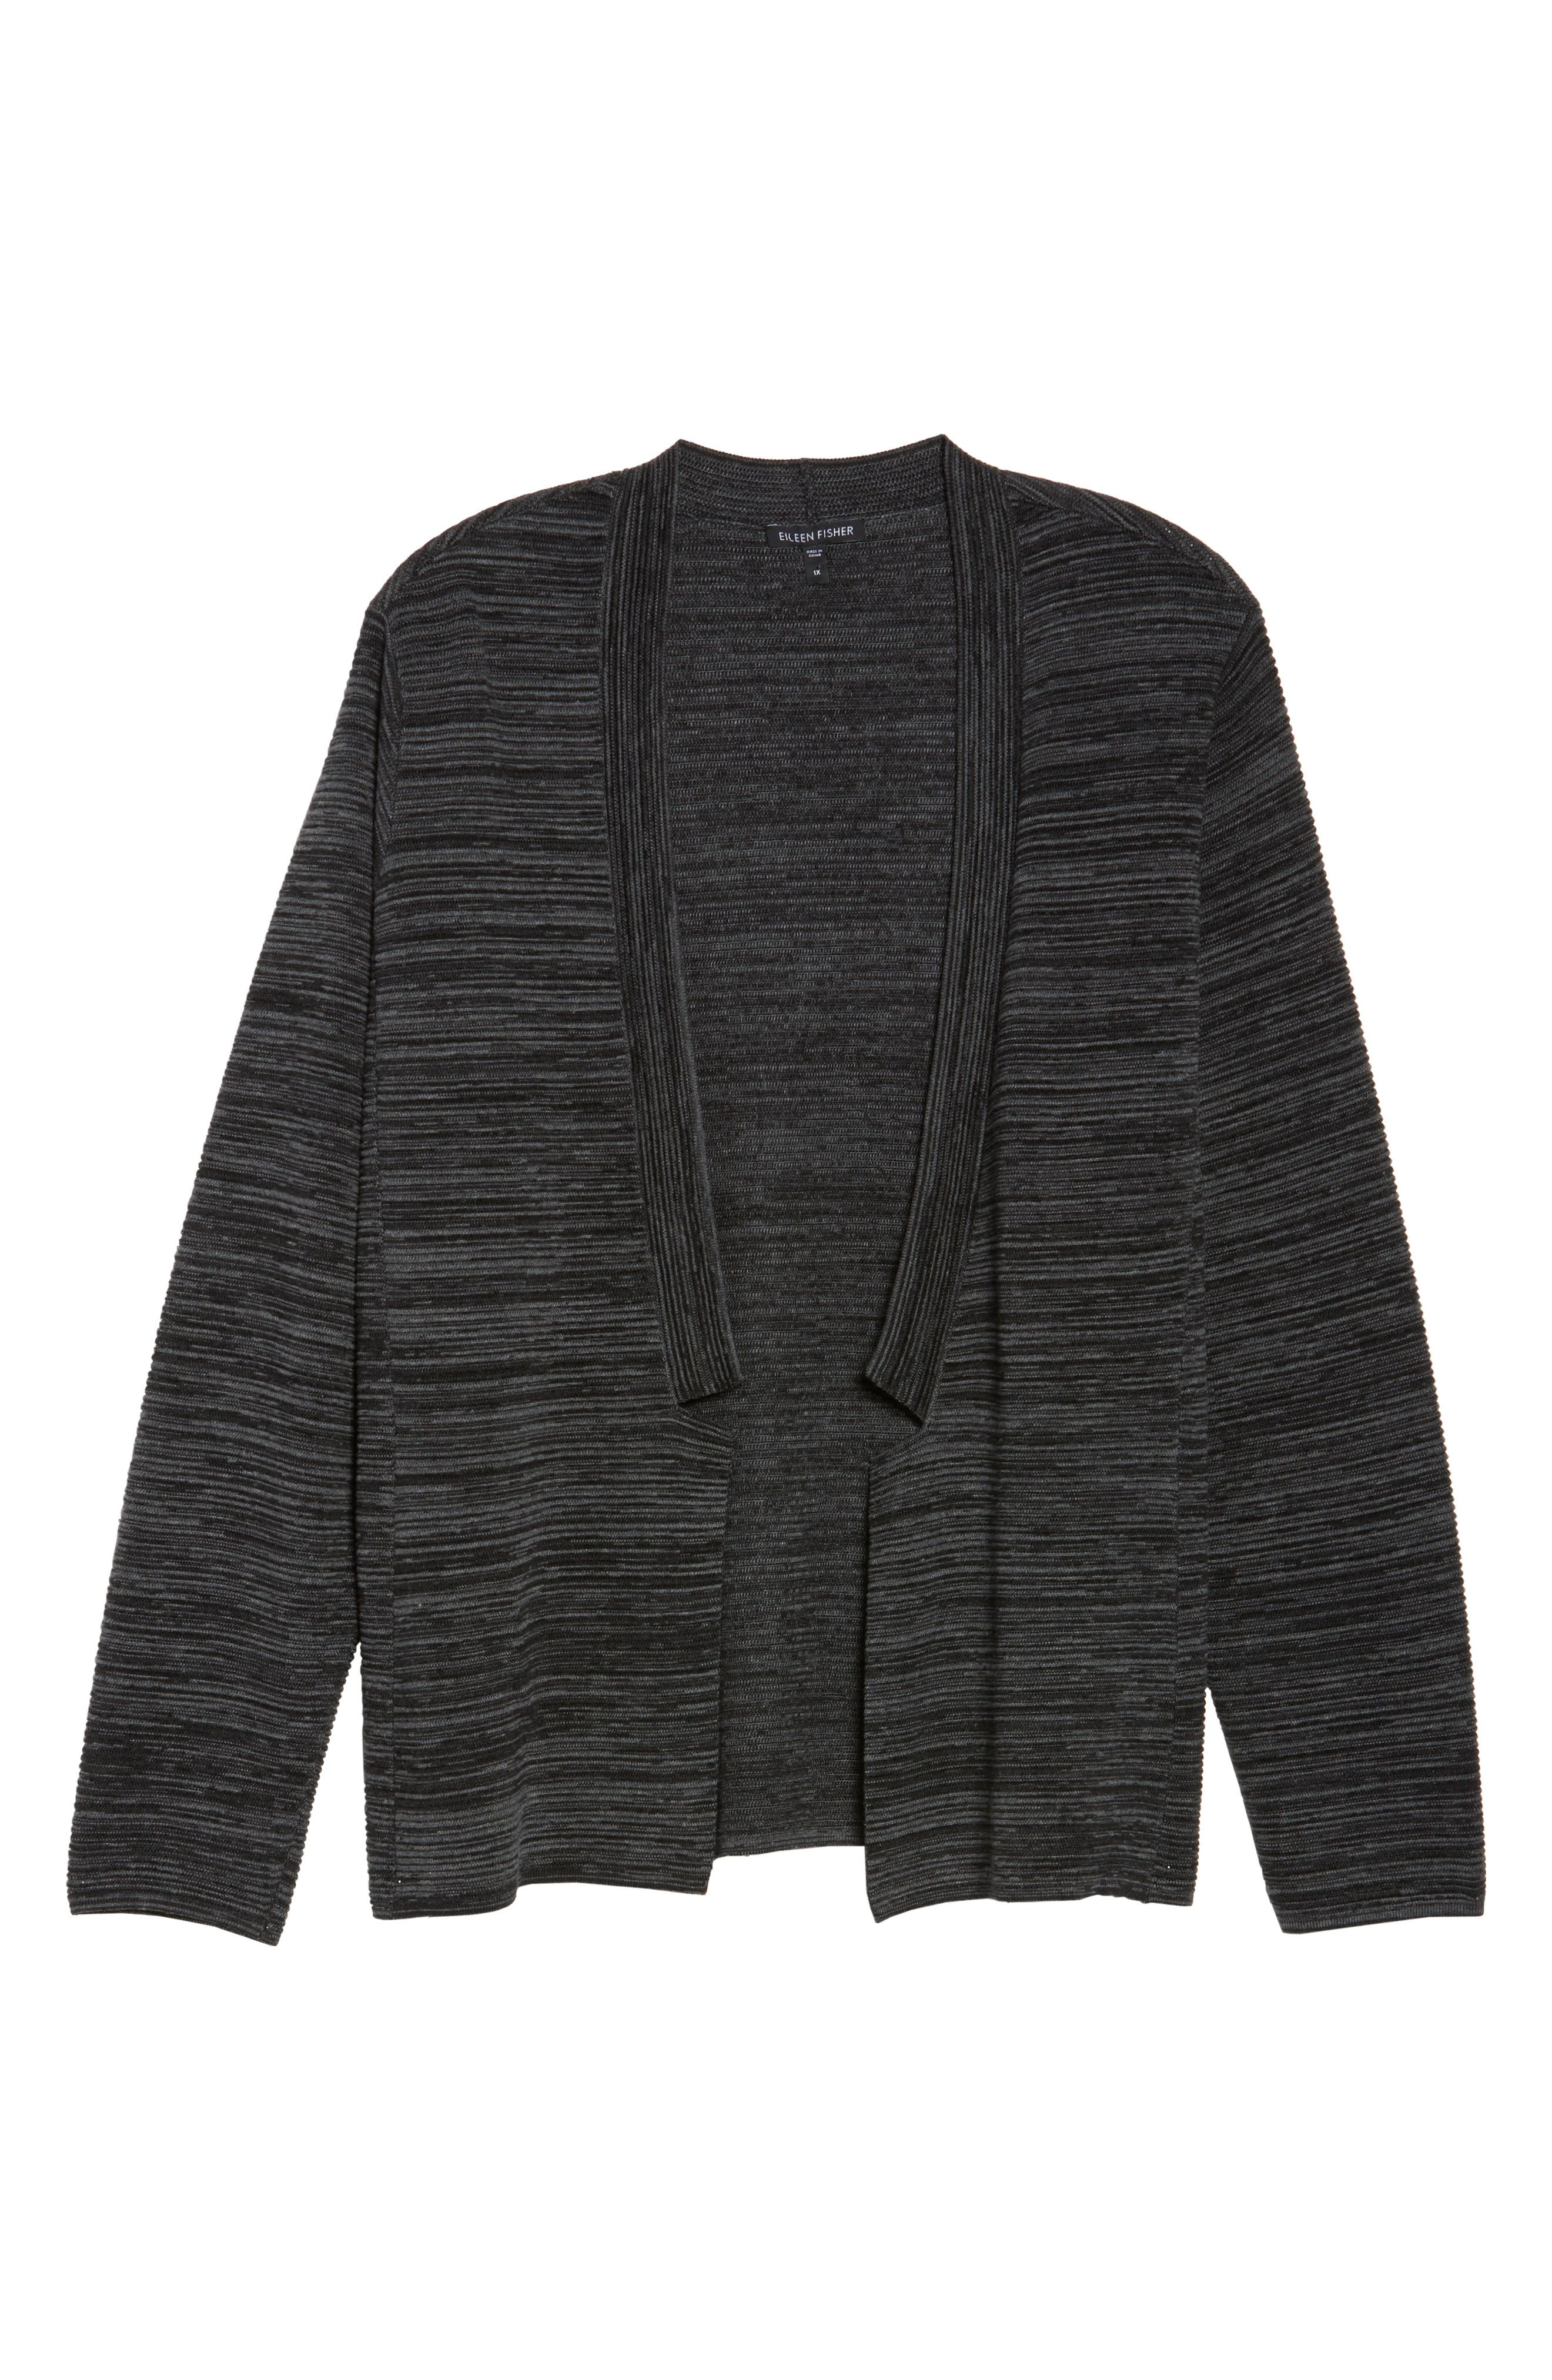 Tencel<sup>®</sup> & Organic Cotton Cardigan,                             Alternate thumbnail 5, color,                             Black